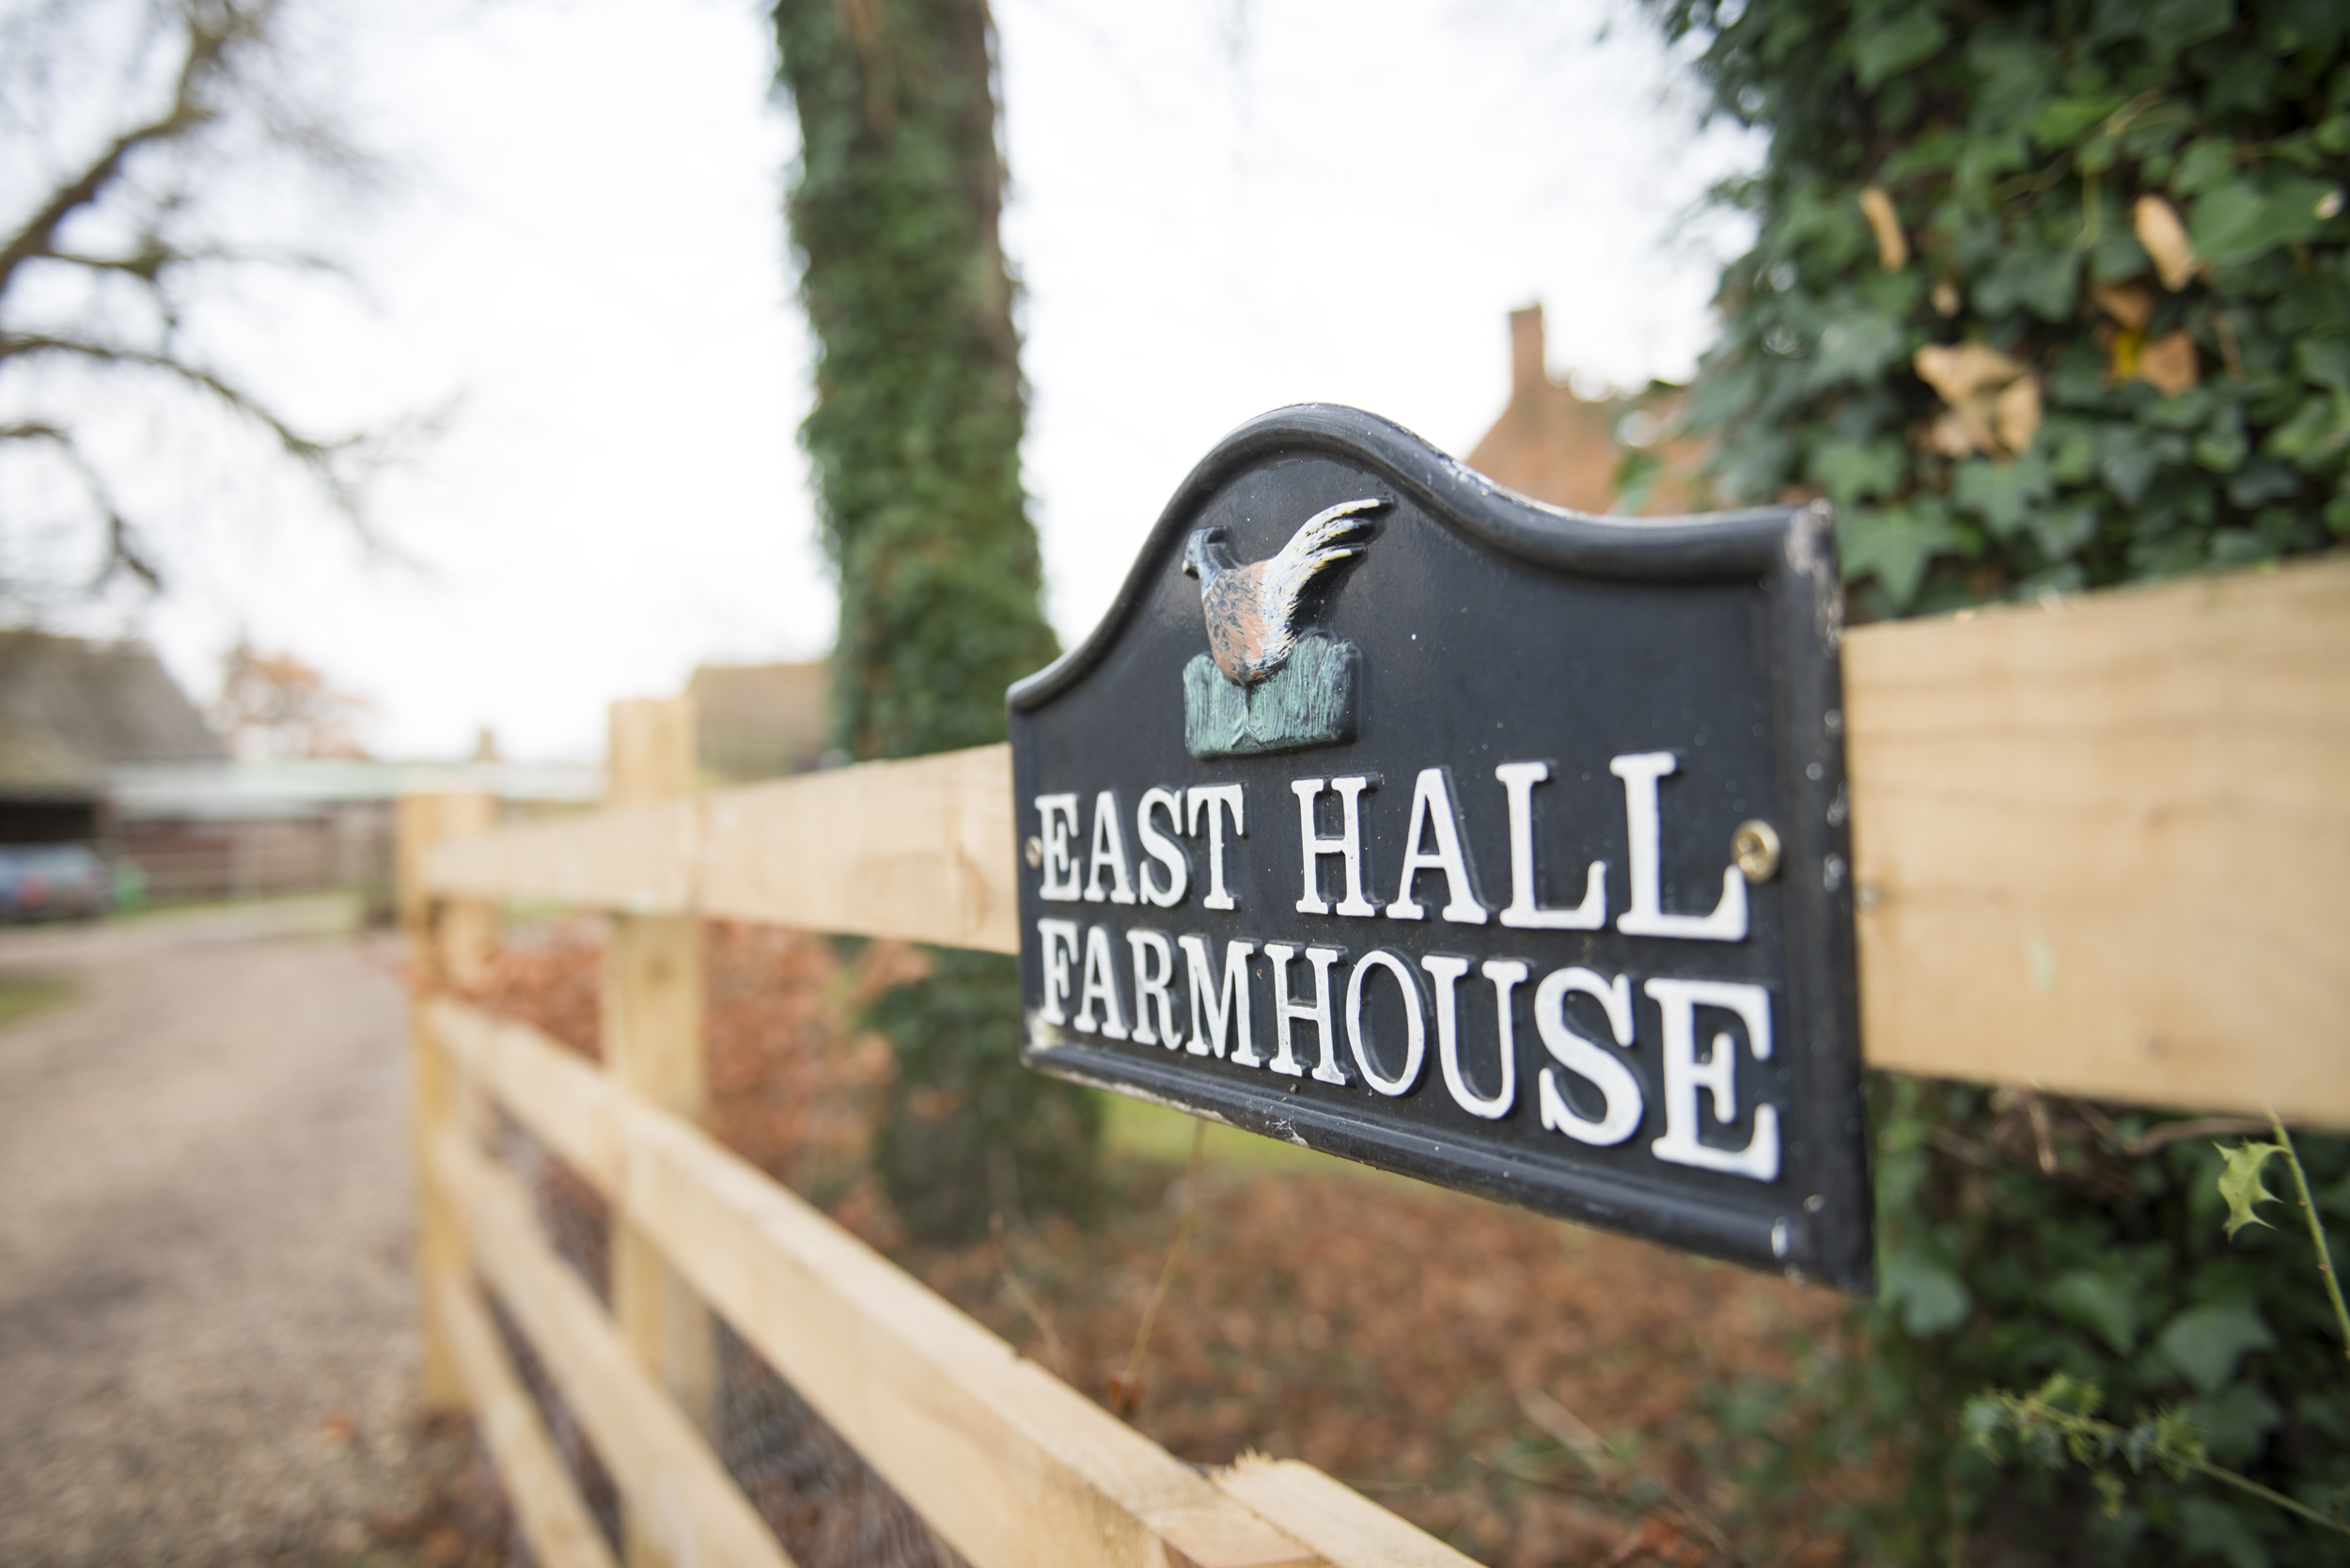 East Hall Farmhouse is located on the Bowes-Lyon Estate, St Paul's Walden, Hertfordshire.